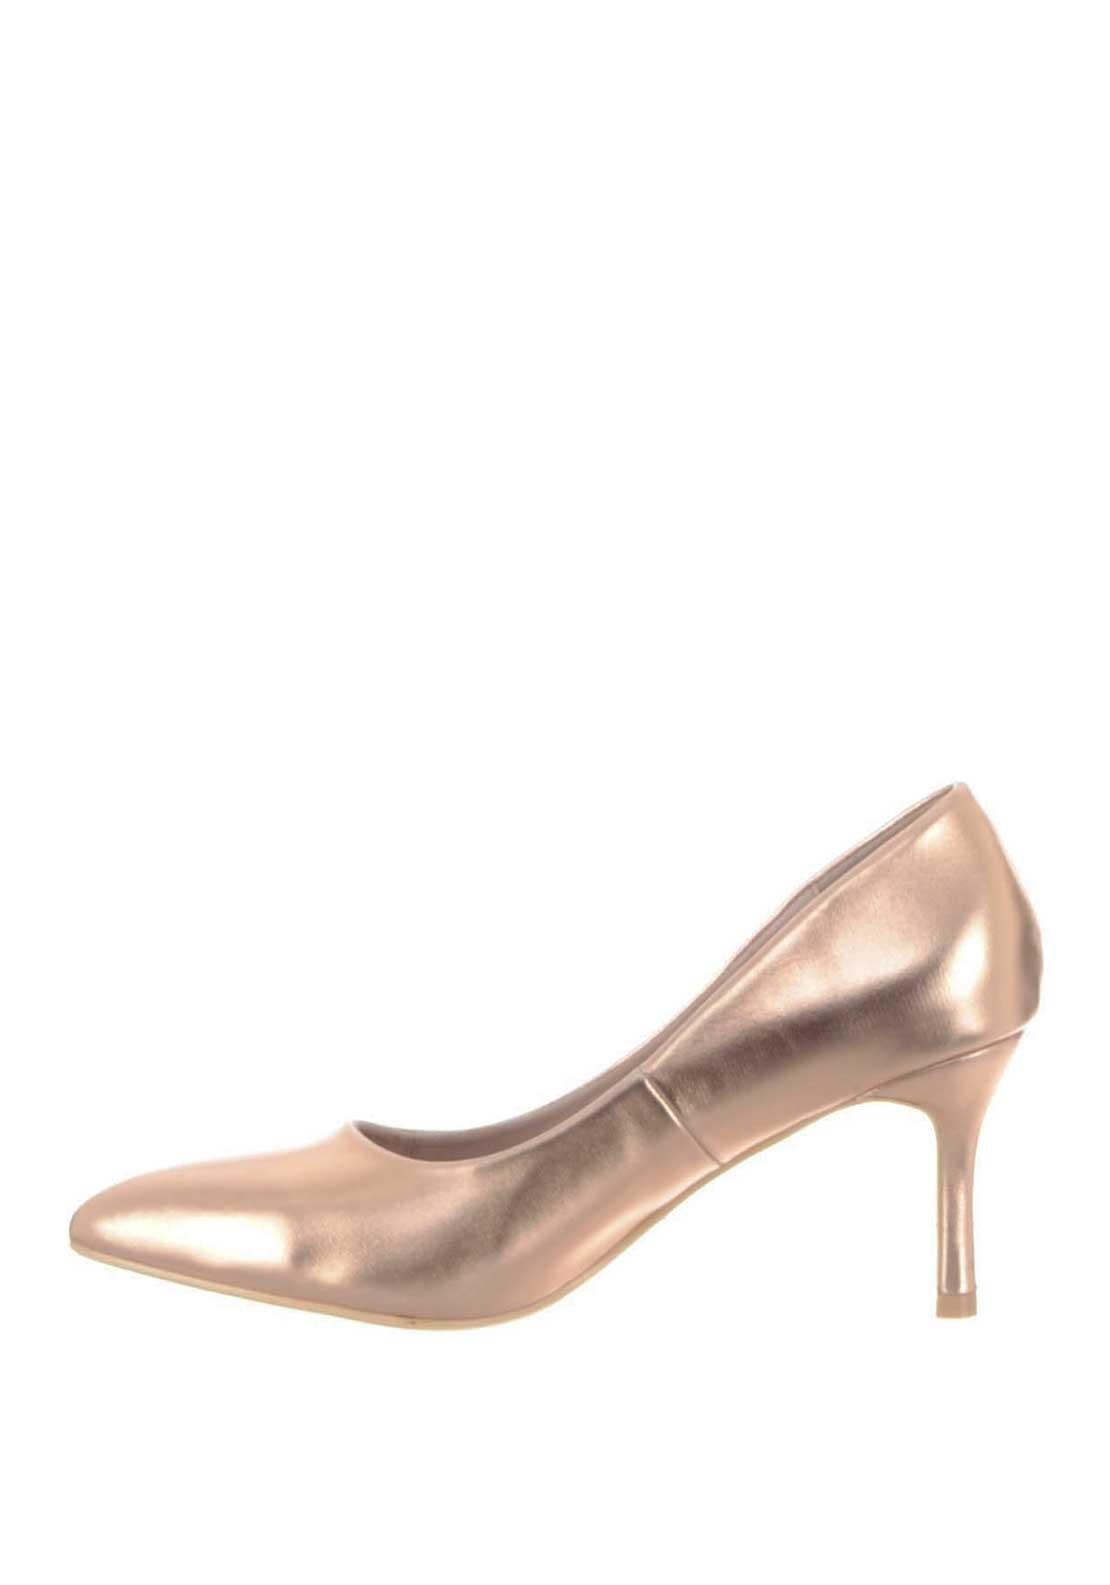 Buy JOYCE Pointed Toe Stiletto High Heel Court Shoes Gold